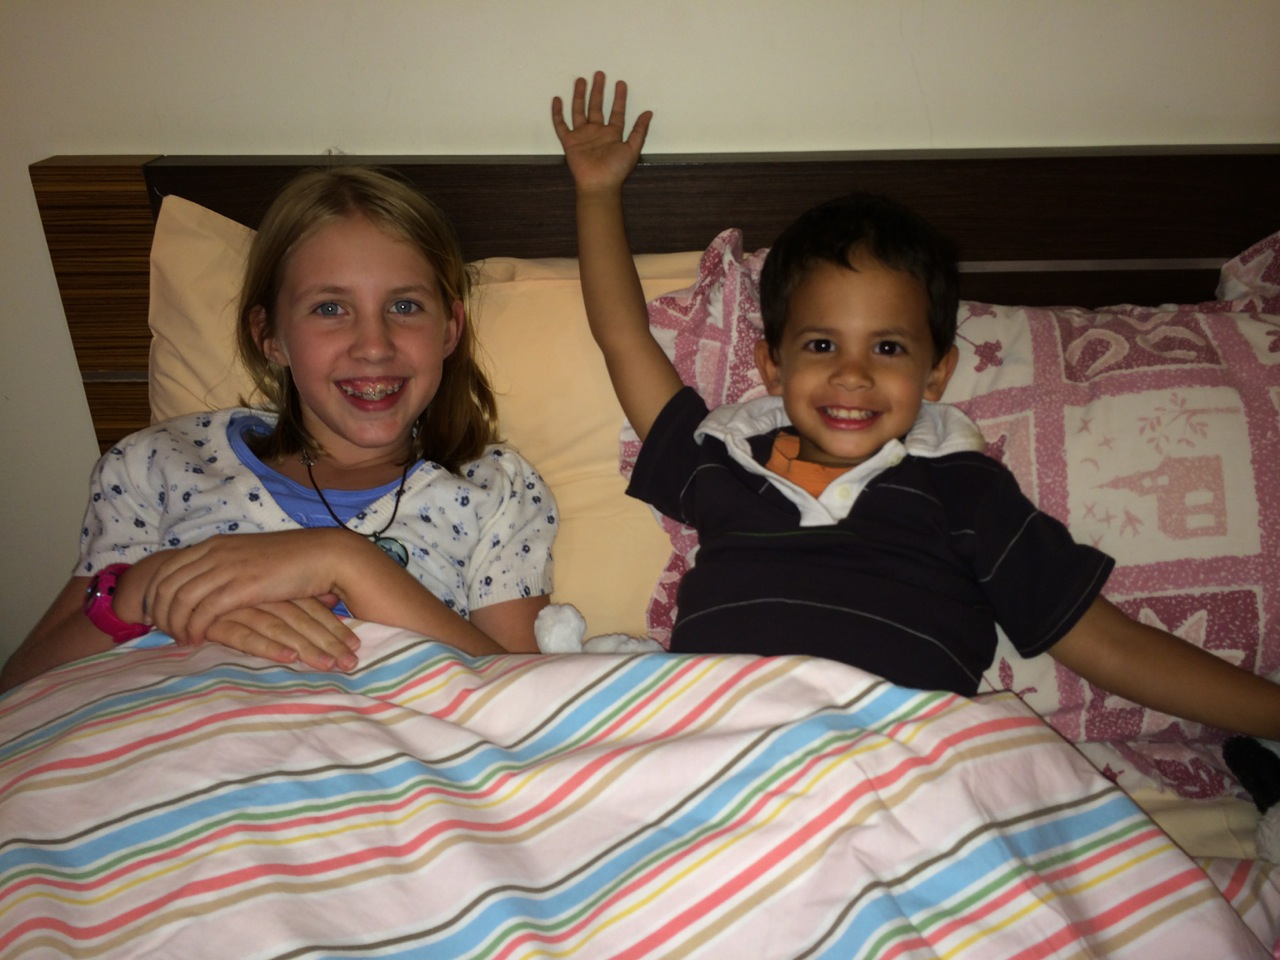 Jacob pretending he was going to sleep with his cousin Rebekah.